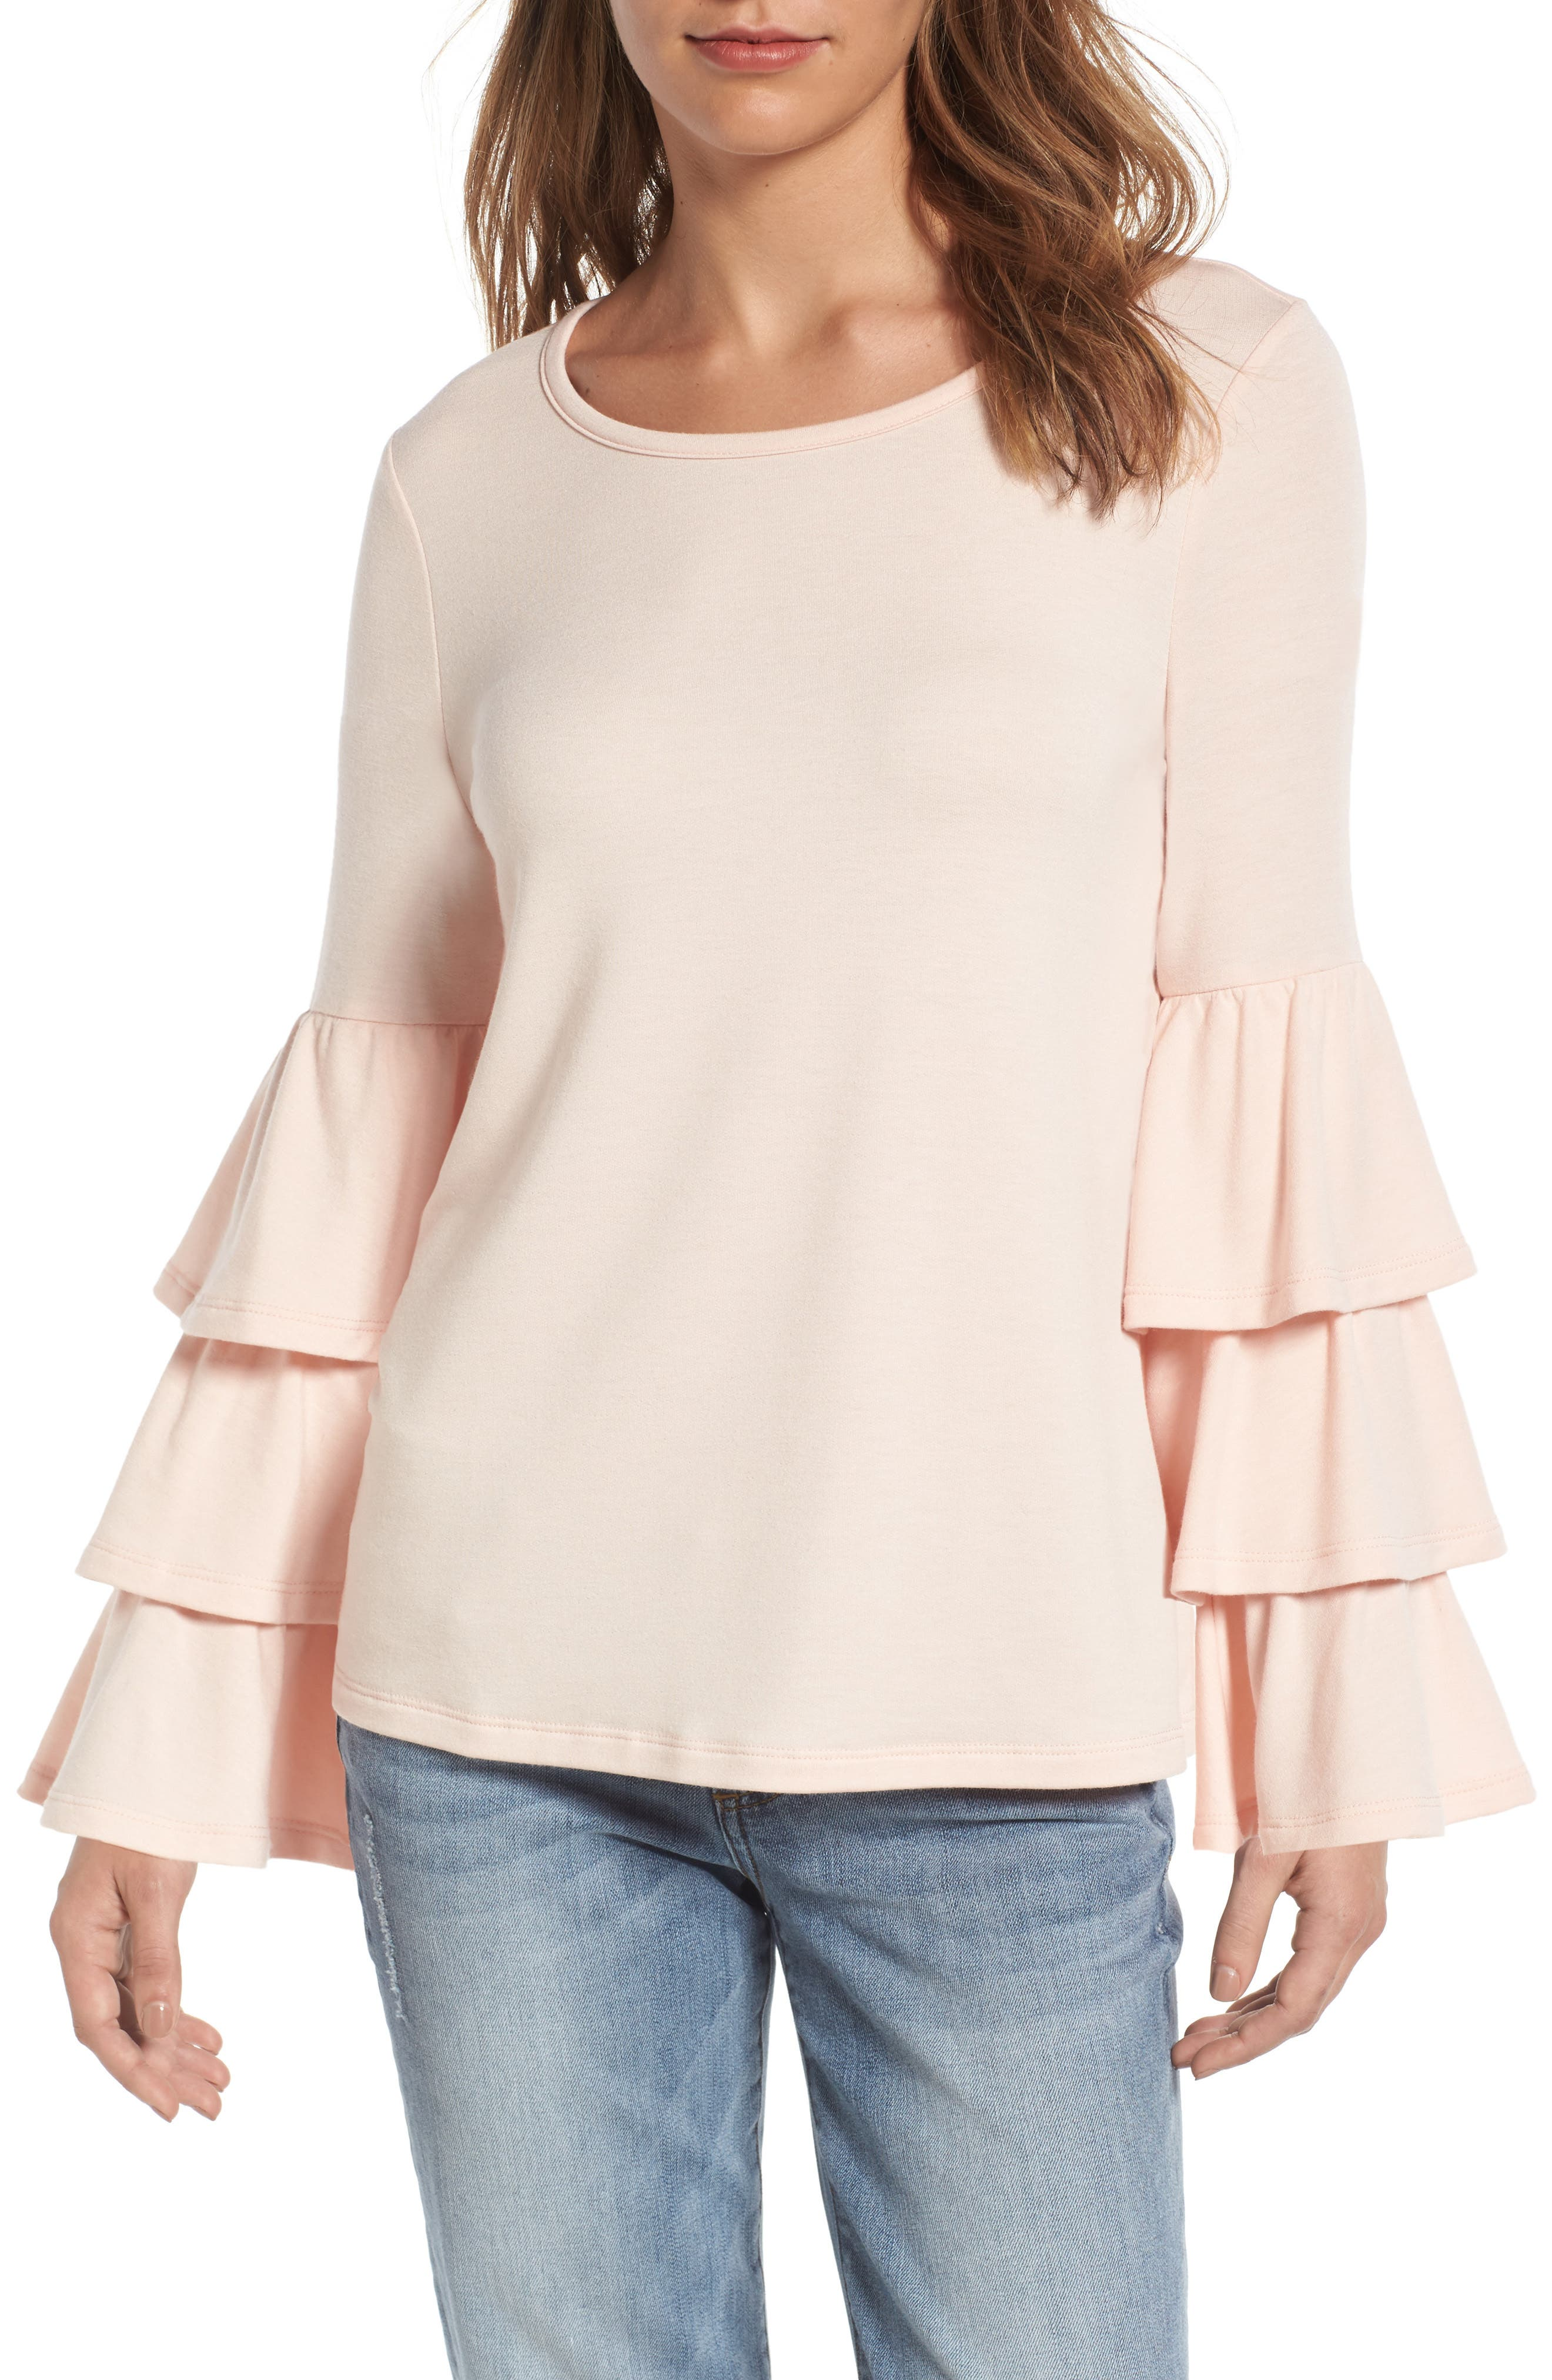 Main Image - Pleione Tiered Bell Sleeve Knit Top (Regular & Petite)